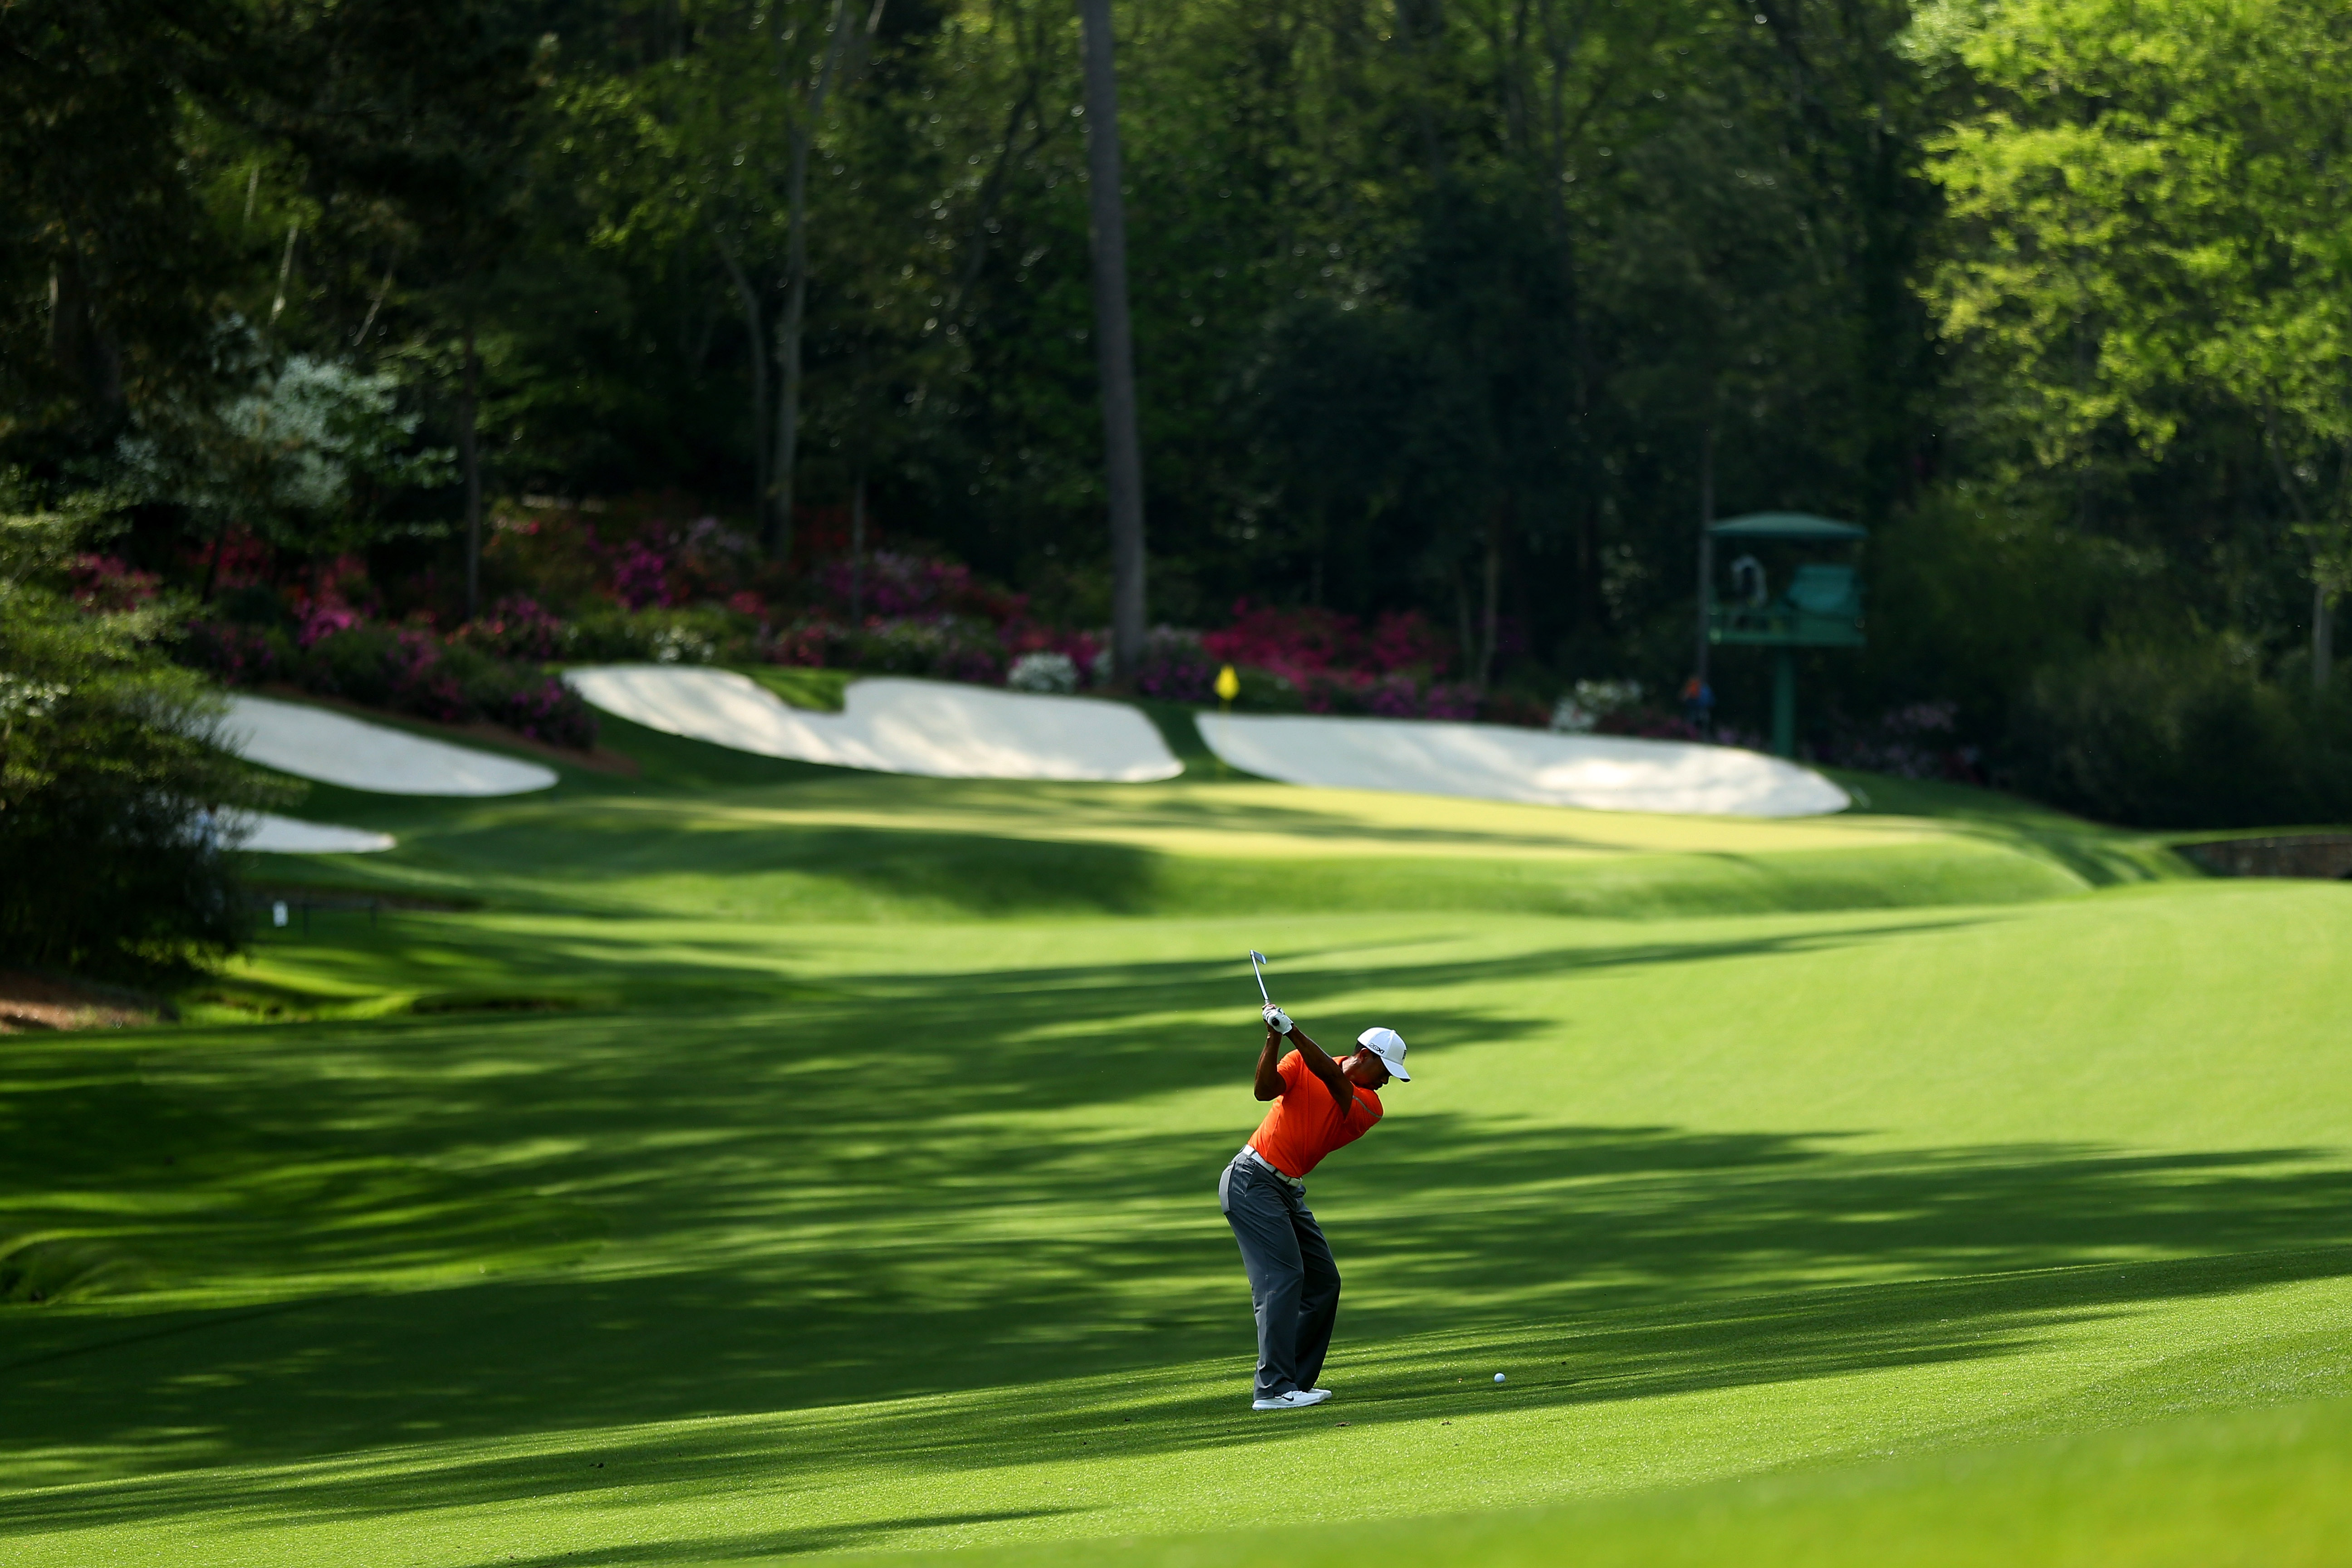 AUGUSTA, GA - APRIL 08:  Tiger Woods of the United States hits a shot during a practice round prior to the start of the 2013 Masters Tournament at Augusta National Golf Club on April 8, 2013 in Augusta, Georgia.  (Photo by Mike Ehrmann/Getty Images)